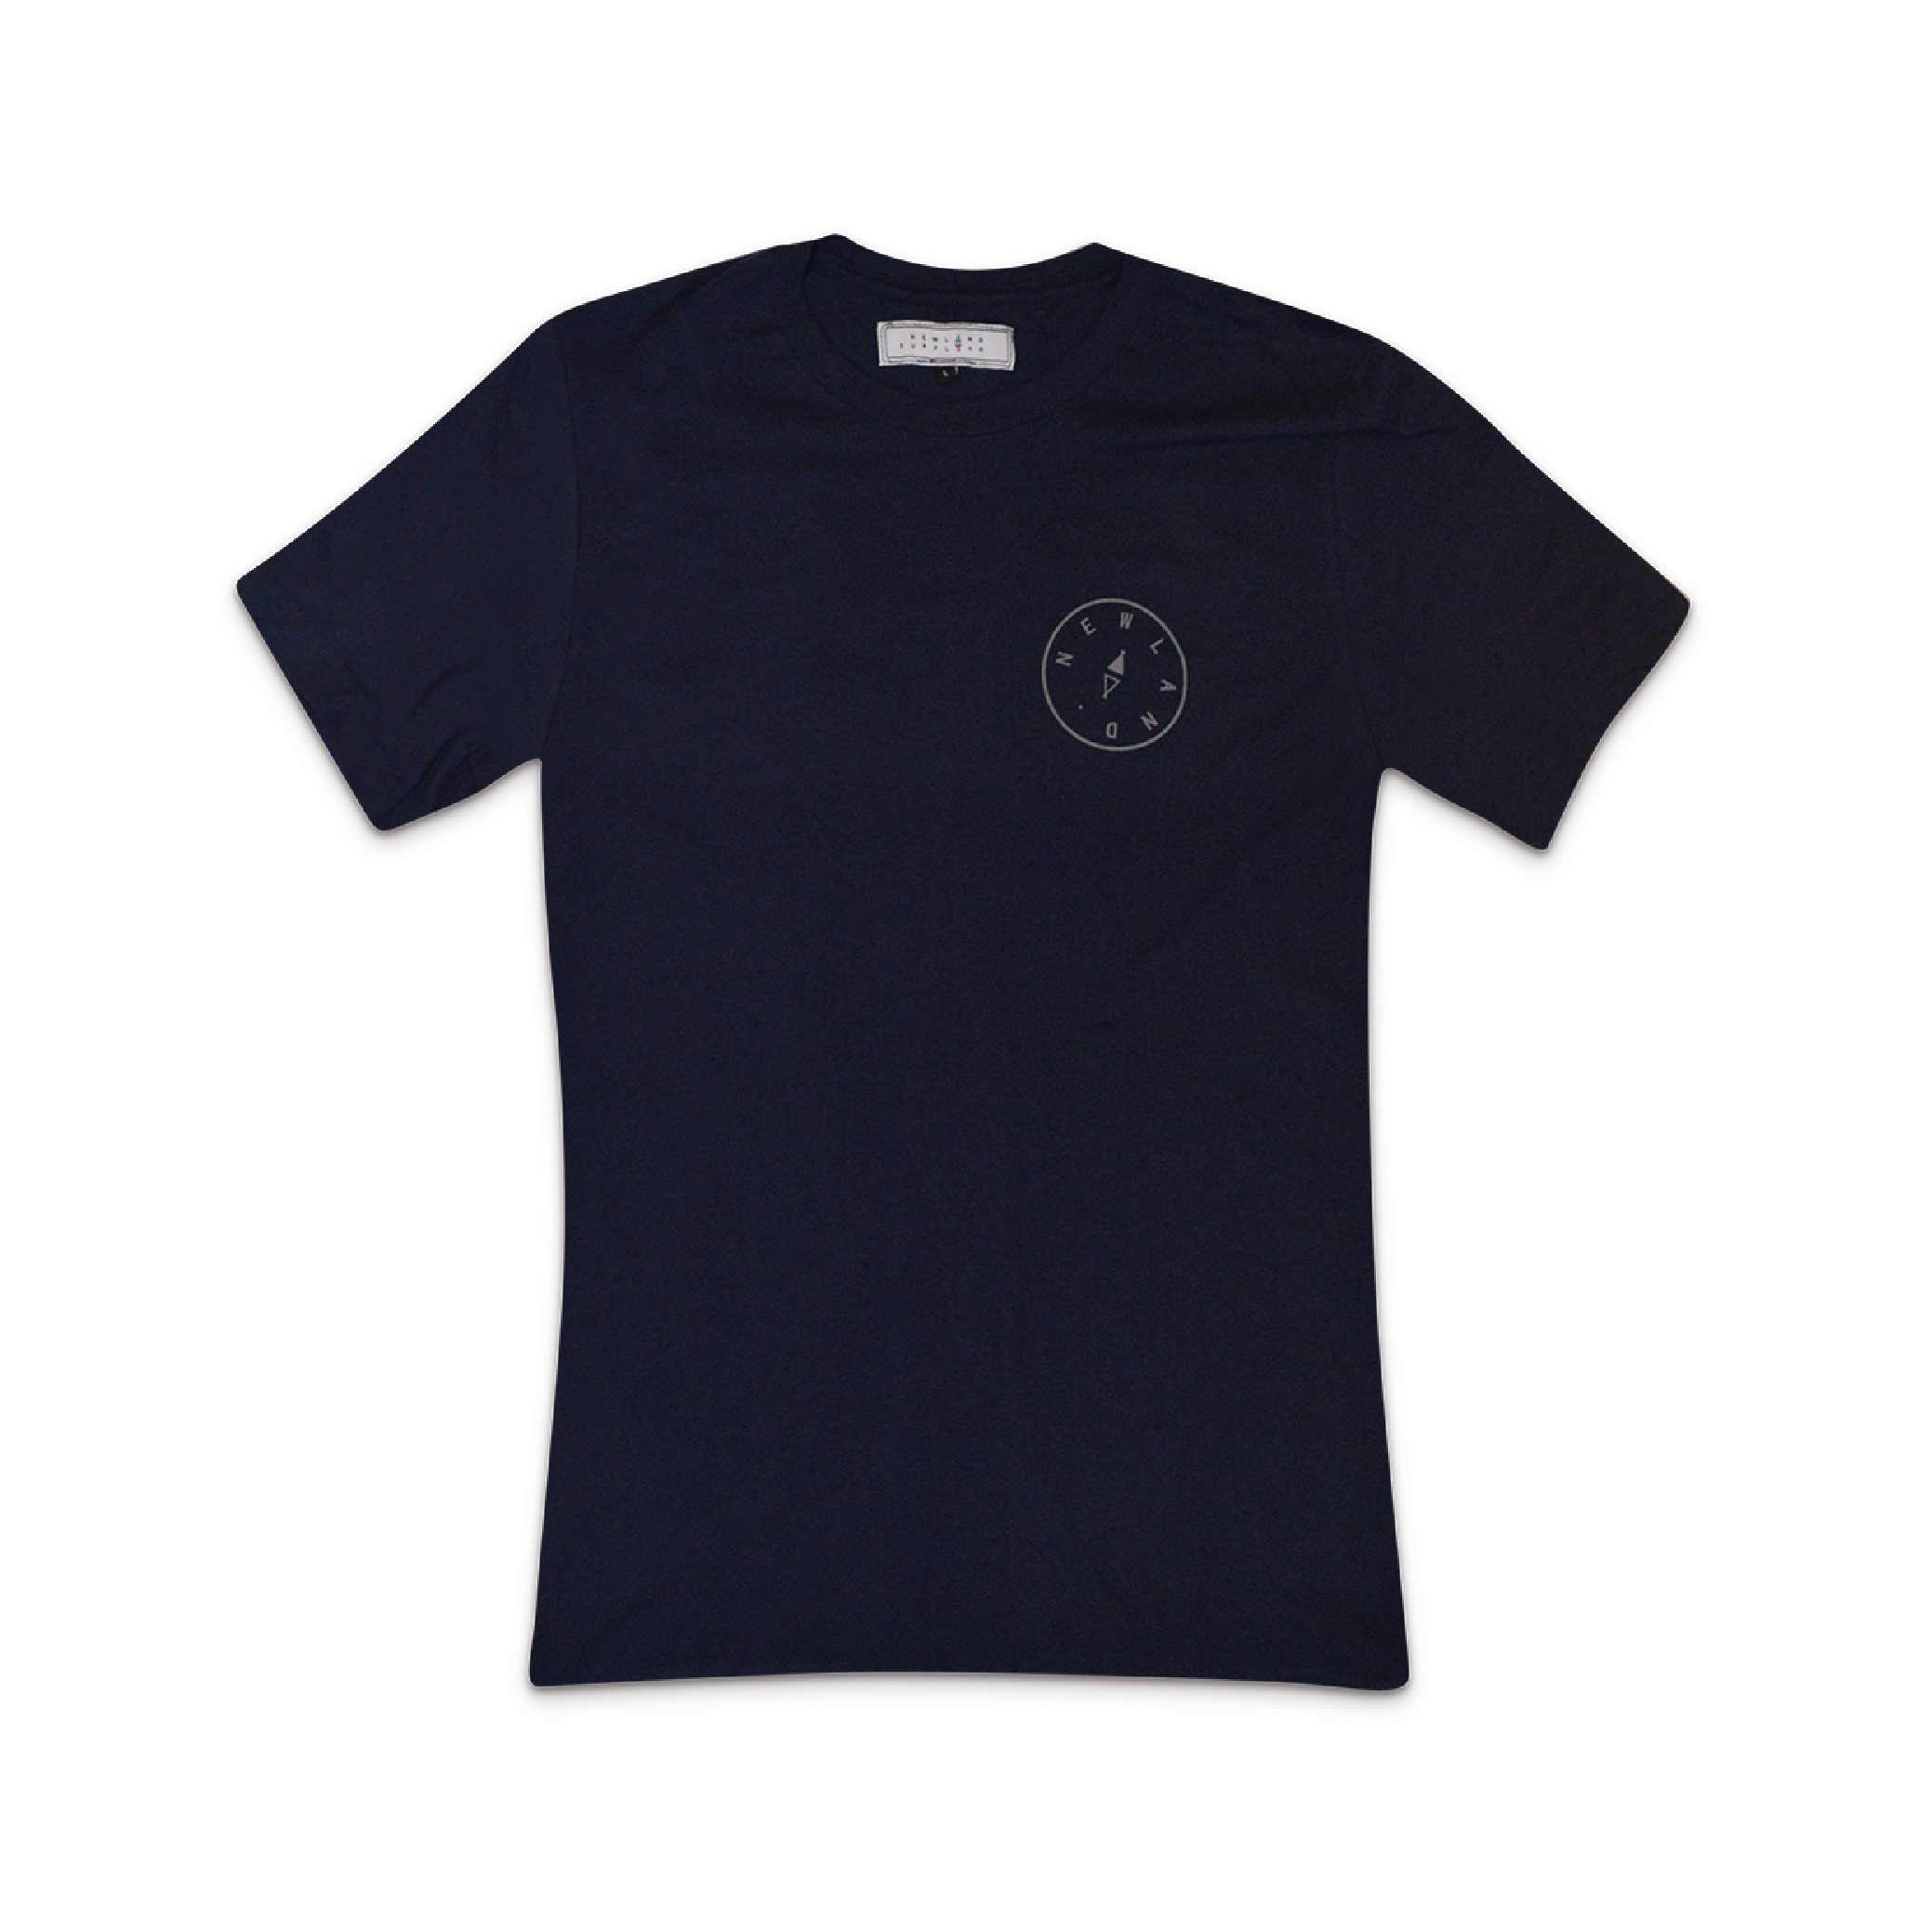 PEVERIL tee in NAVY    By  Newland Supply Co.     A ring-spun cotton classic with Newland print on the front & our compass detailing on the back.    SHOP NOW        £24